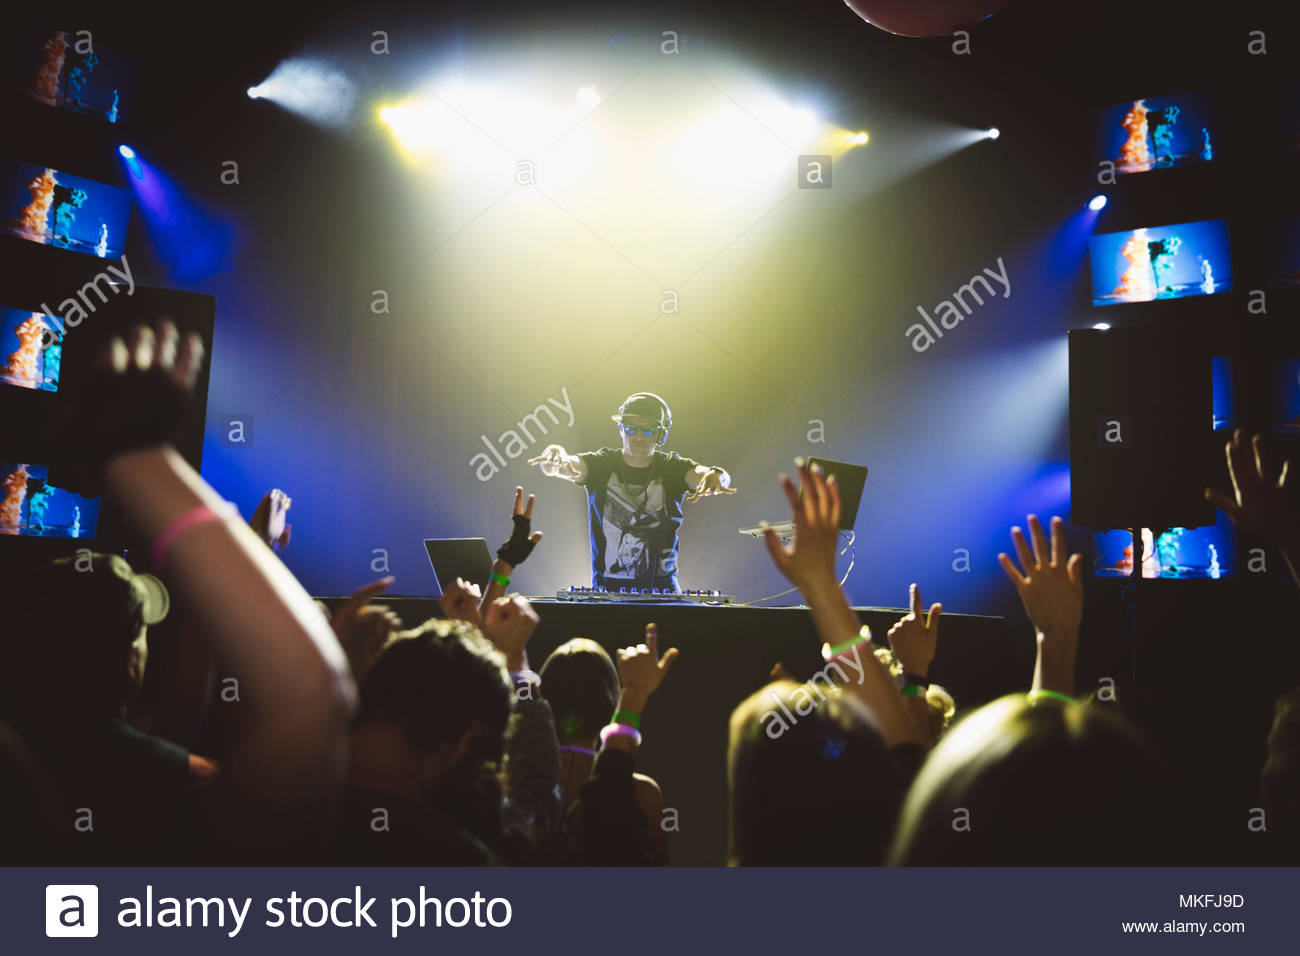 DJ on stage gesturing to crowd dancing in nightclub - Stock Image